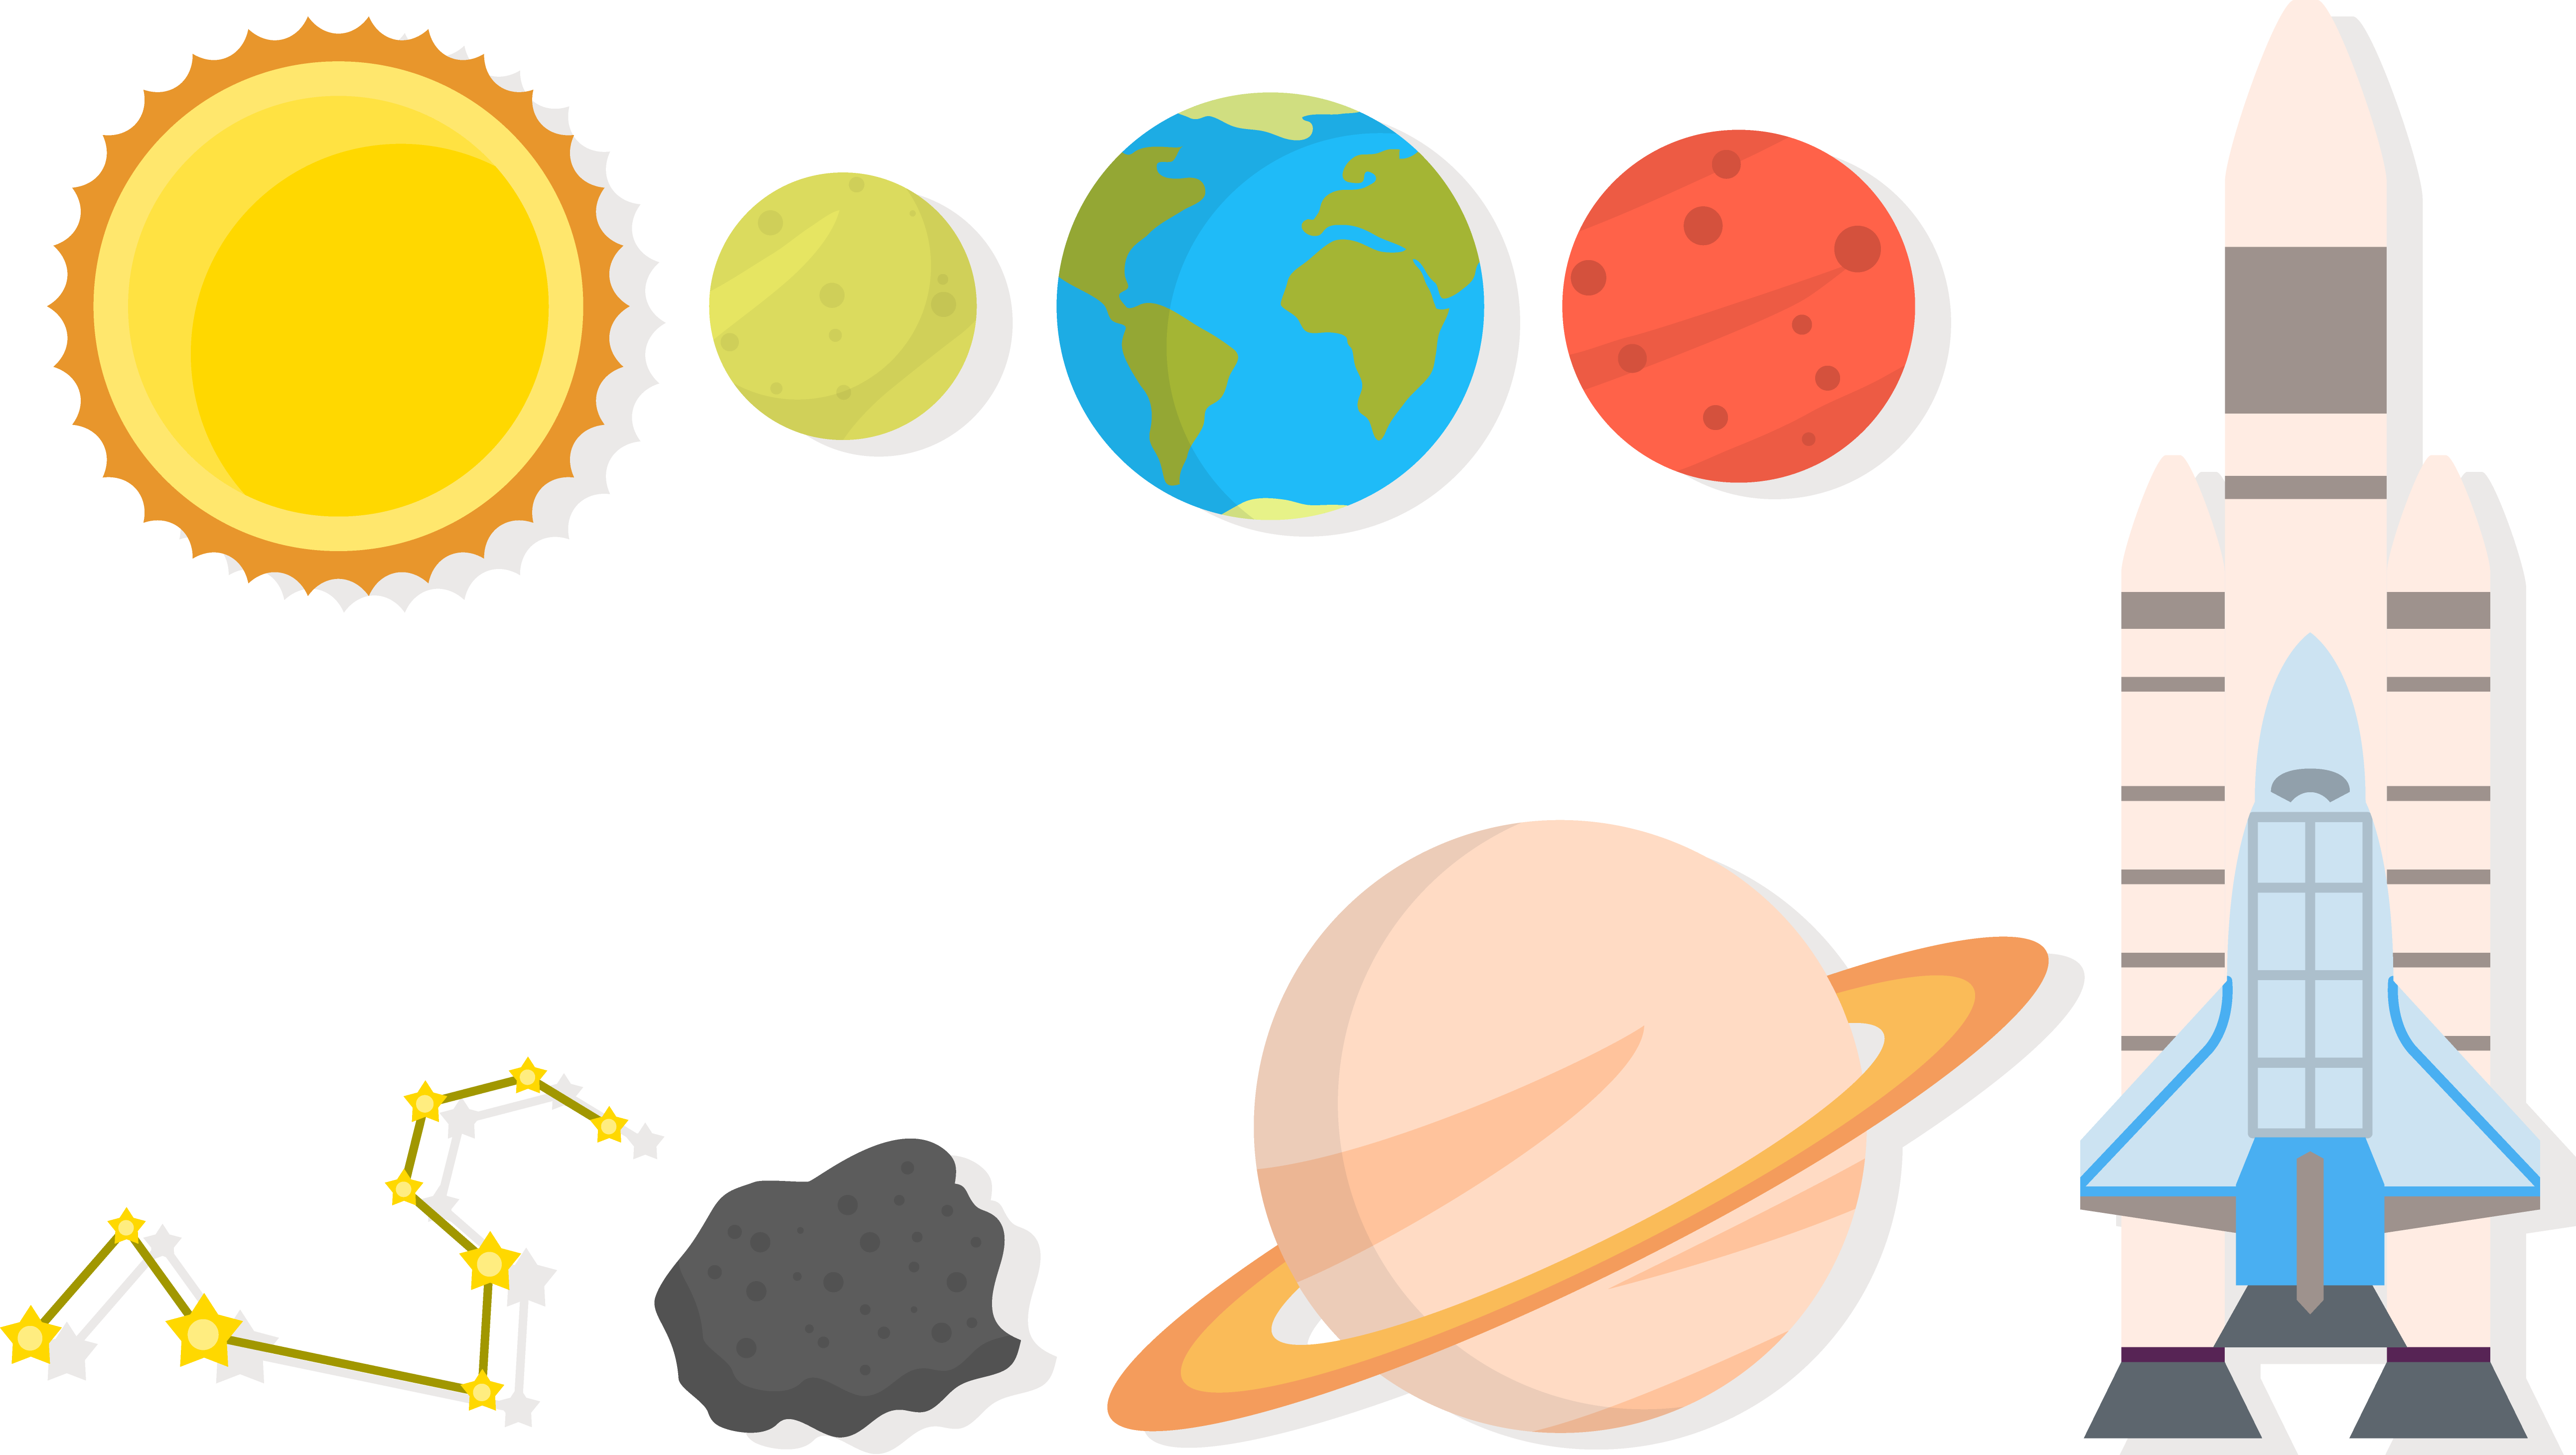 Universe drawing planet technical. Ufo clipart outer space